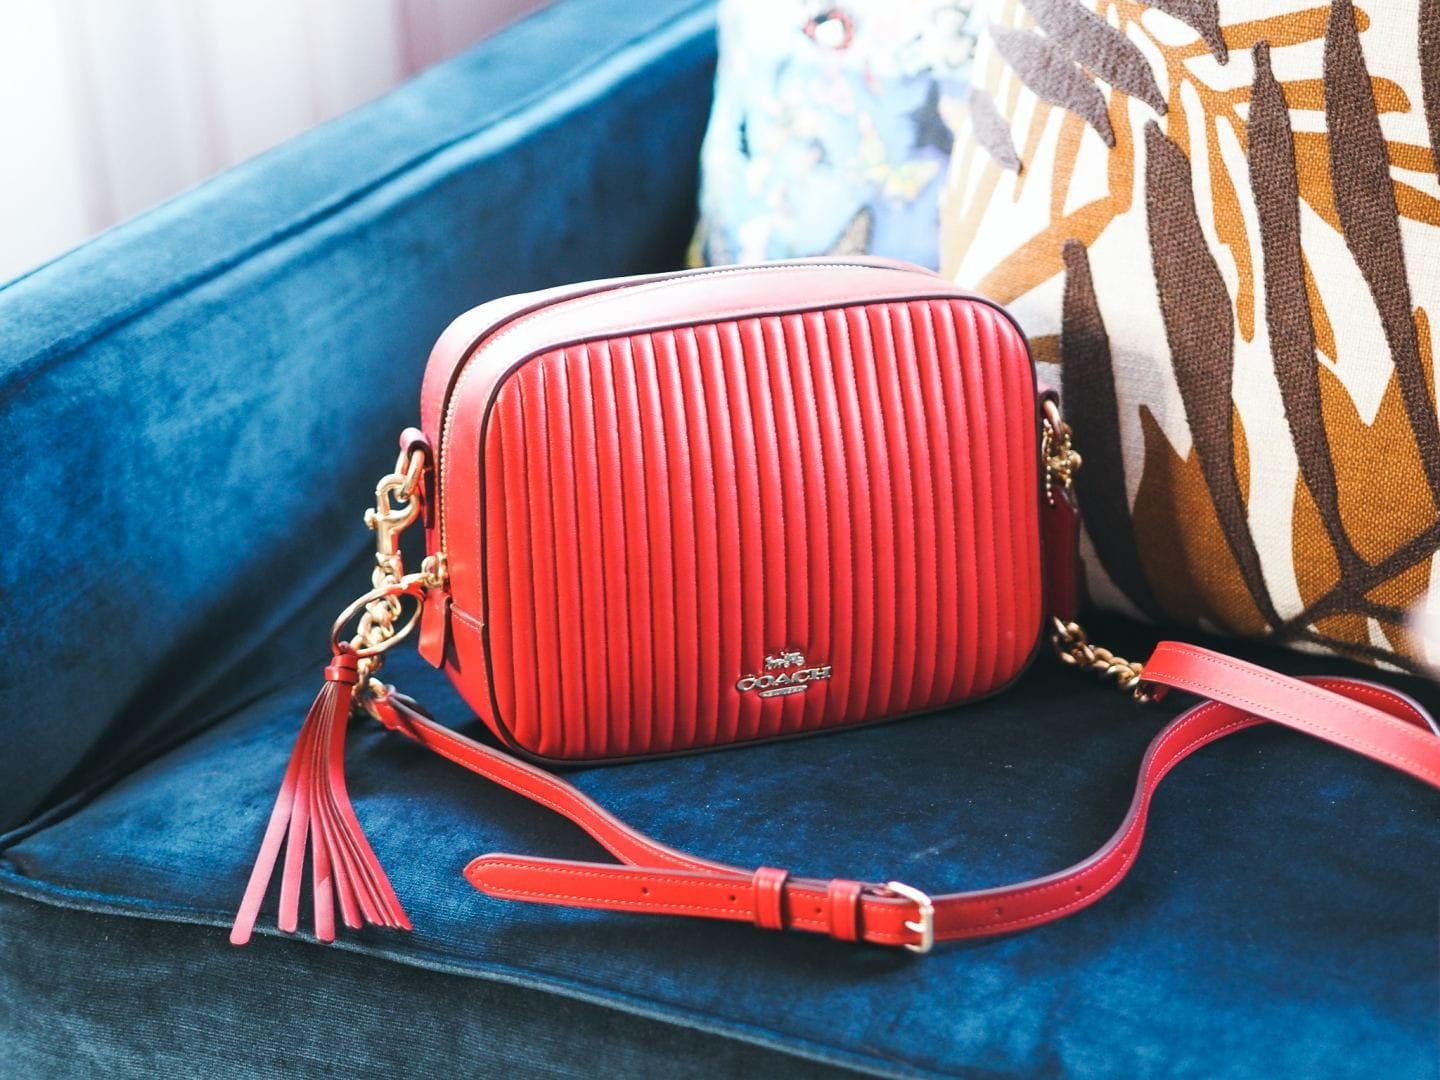 Coach Camera Bag handbag red leather quilted review leather strap